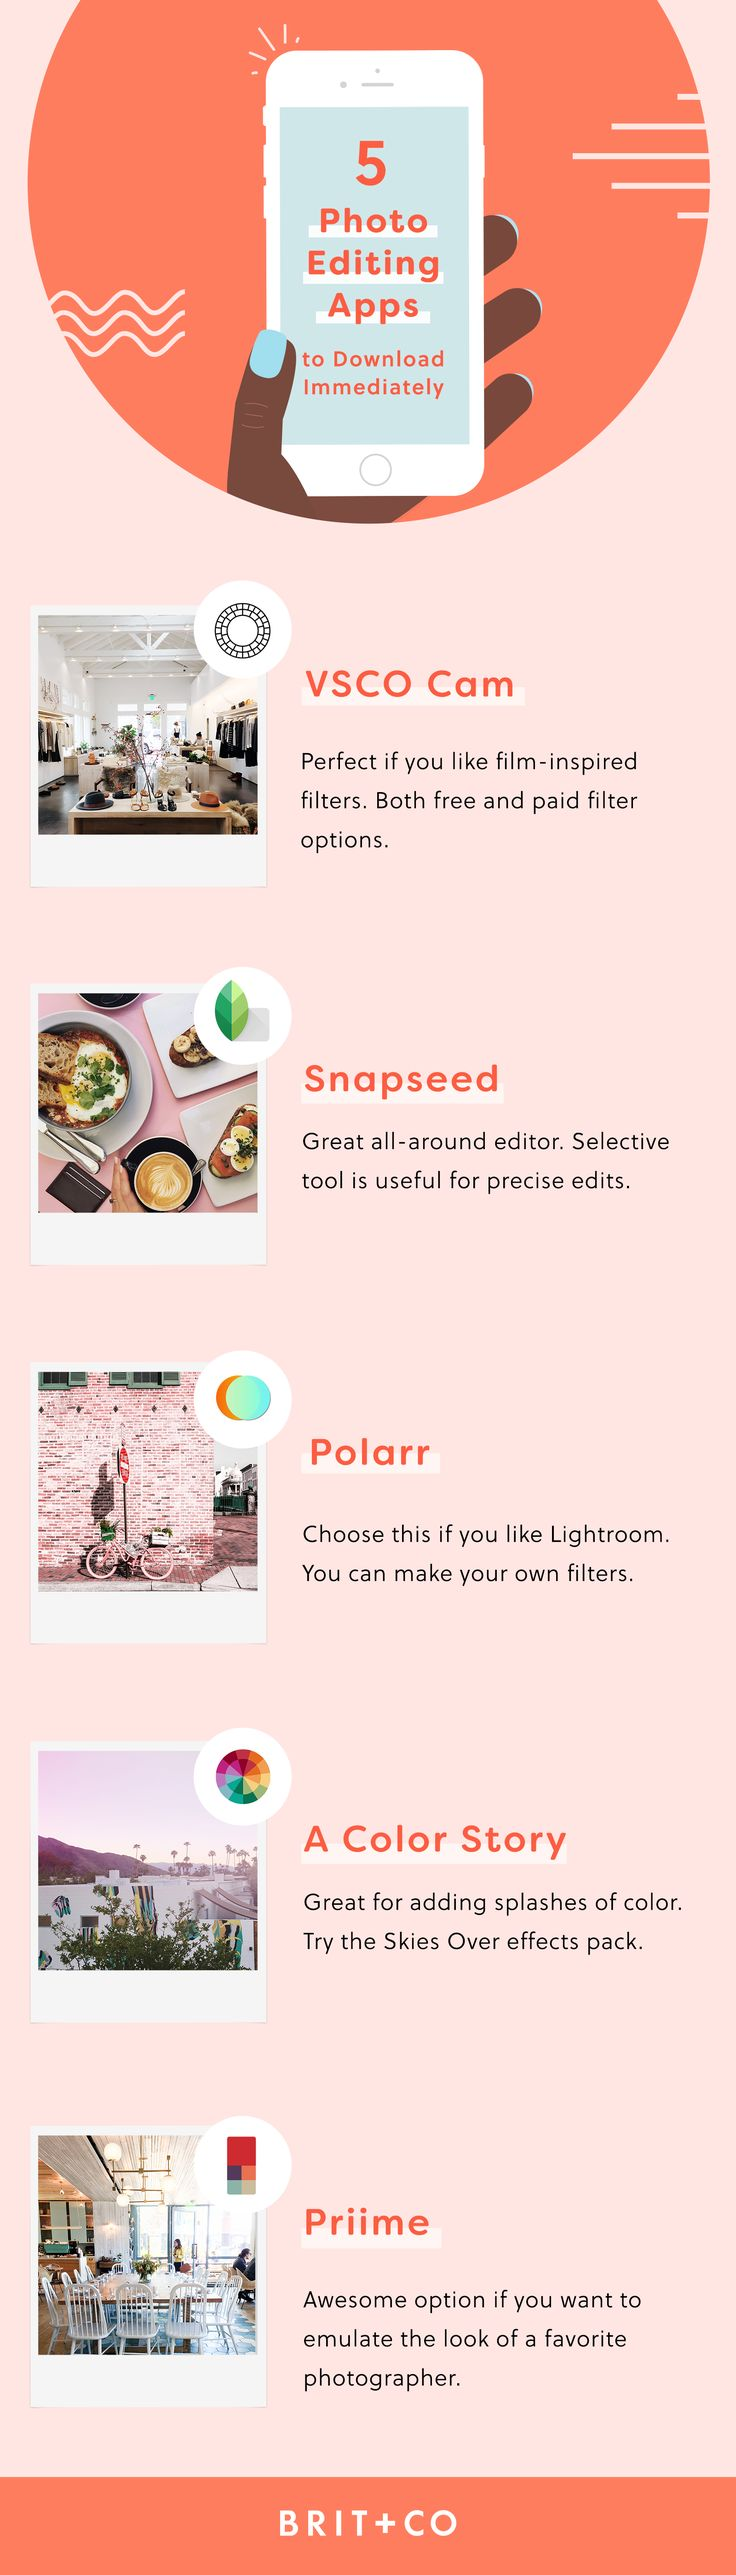 Free online photo editor selective coloring - Wondering Which Photo Editing Apps You Should Be Using And How To Get The Most Out